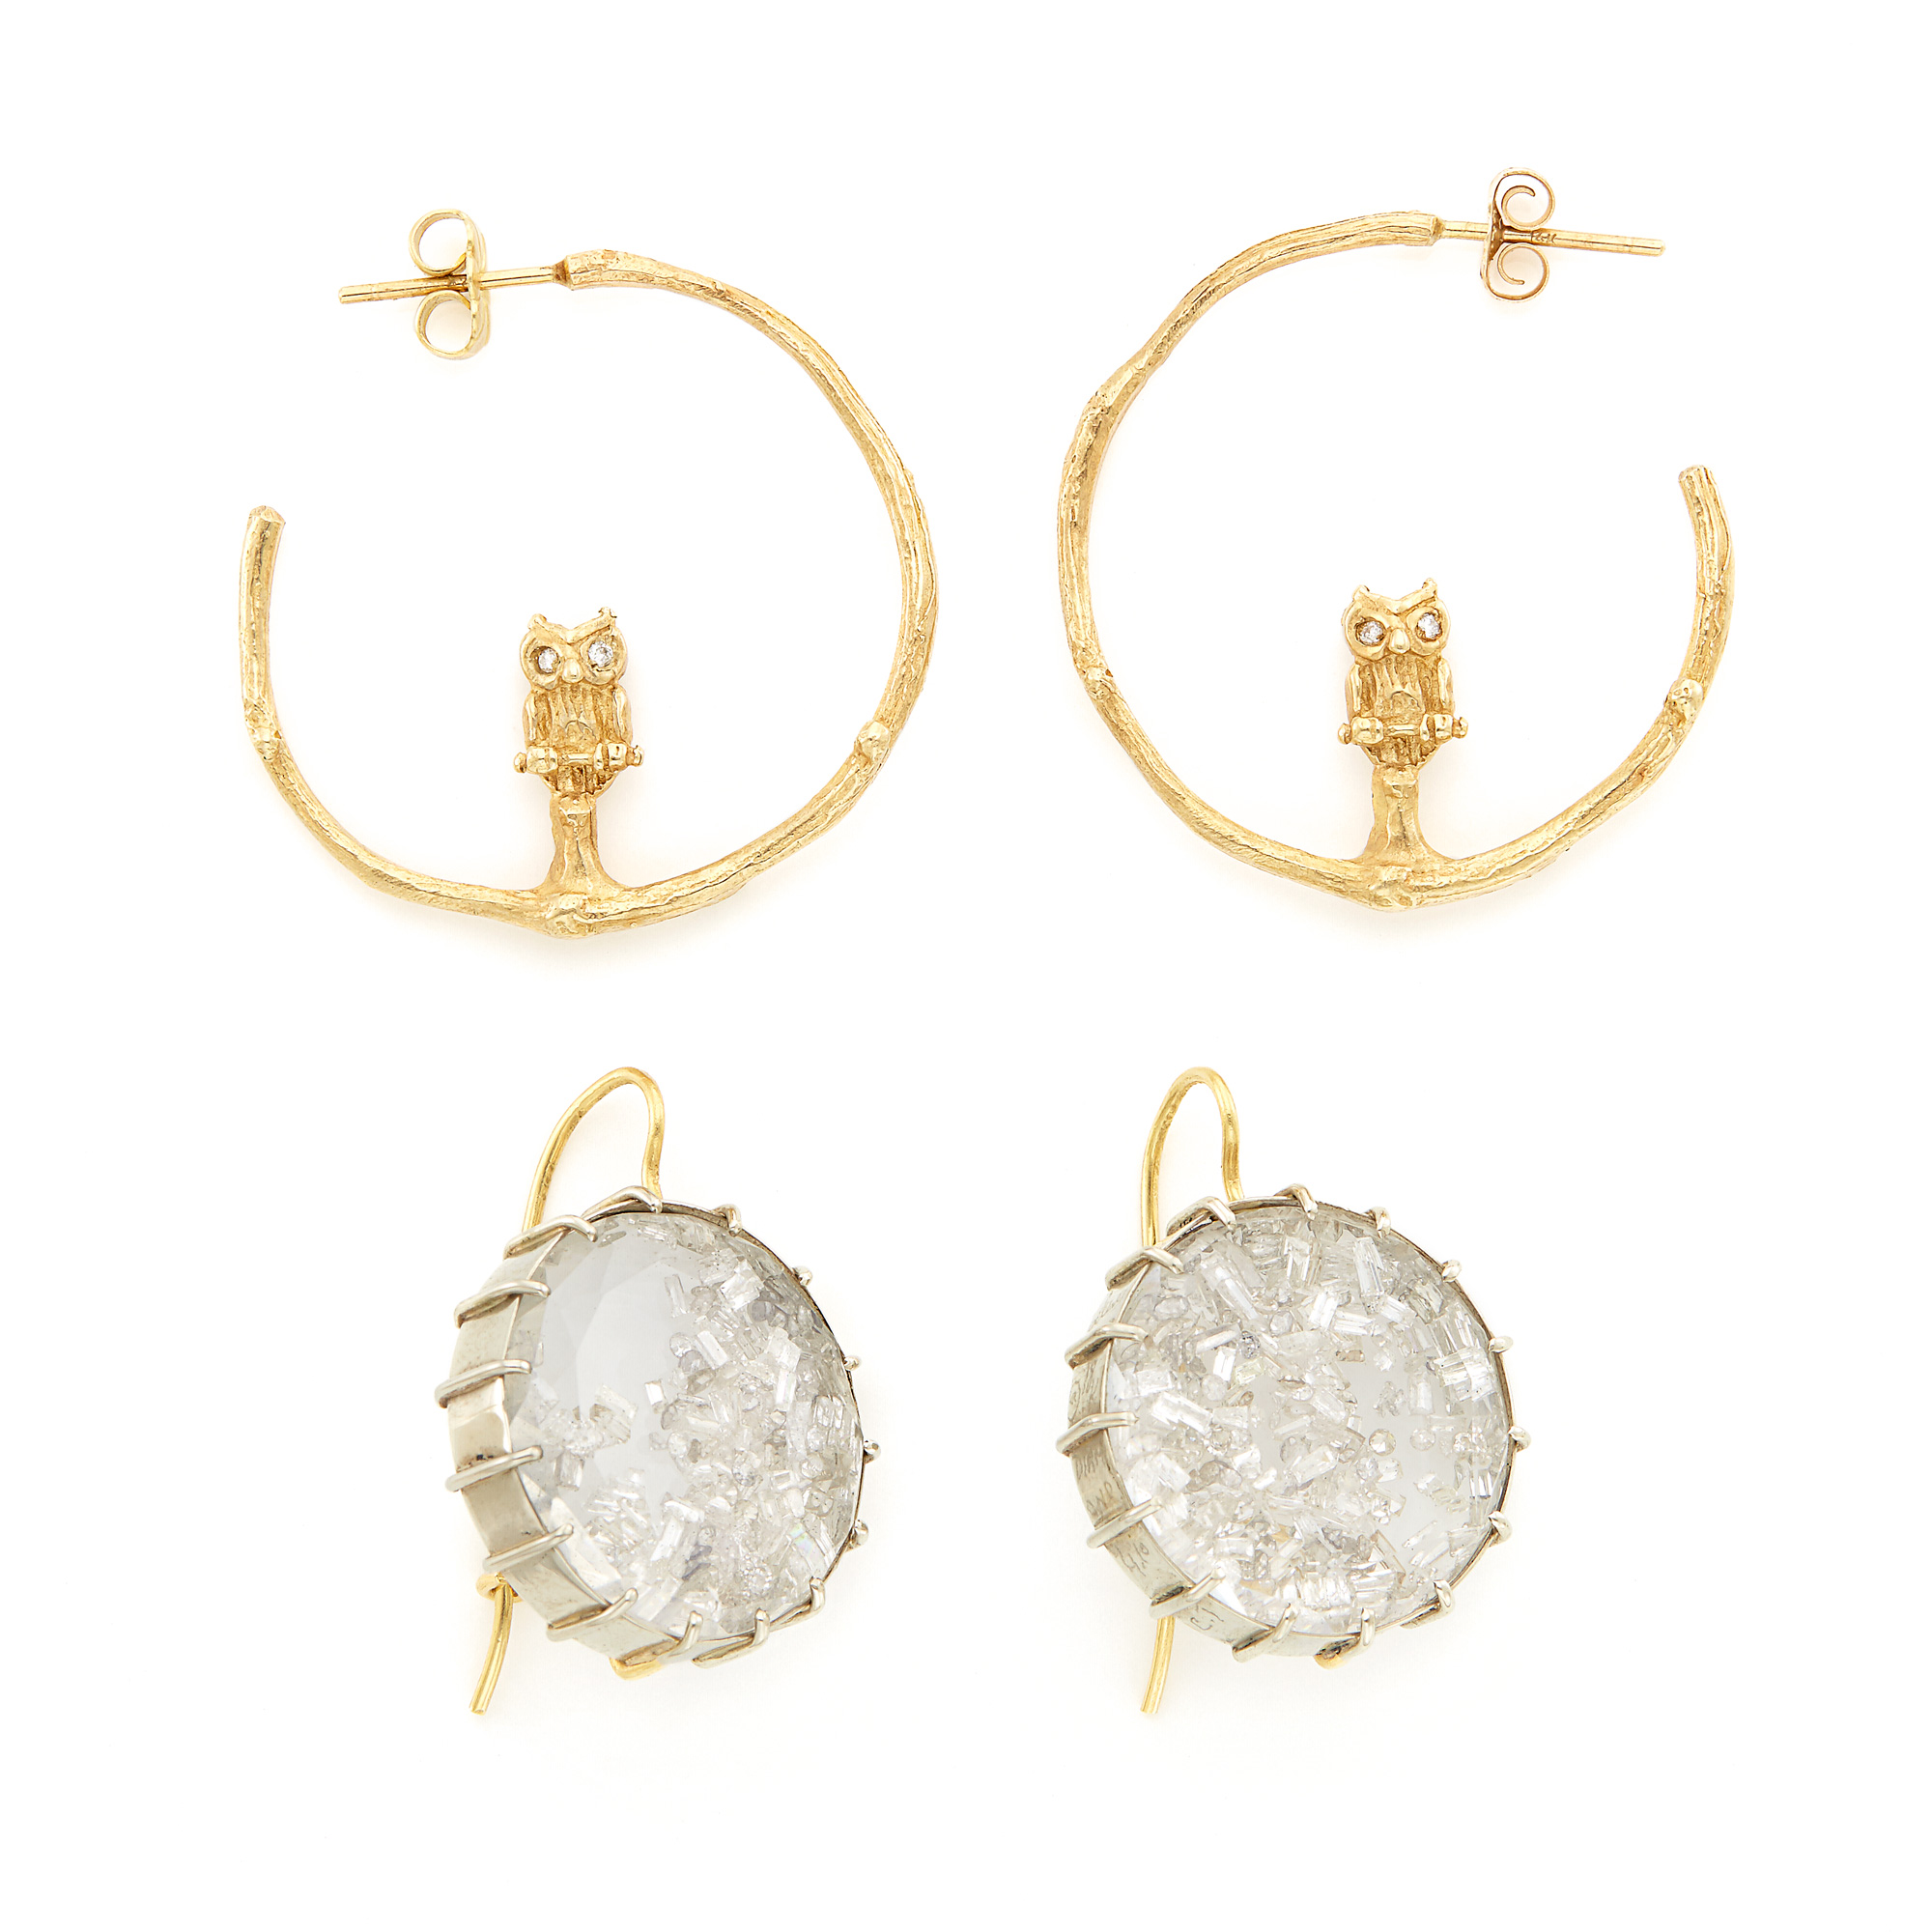 Lot image - Pair of White Gold, Crystal and Diamond Shake Earrings, Renee Lewis, and Pair of Gold Owl and Branch Hoop Earrings